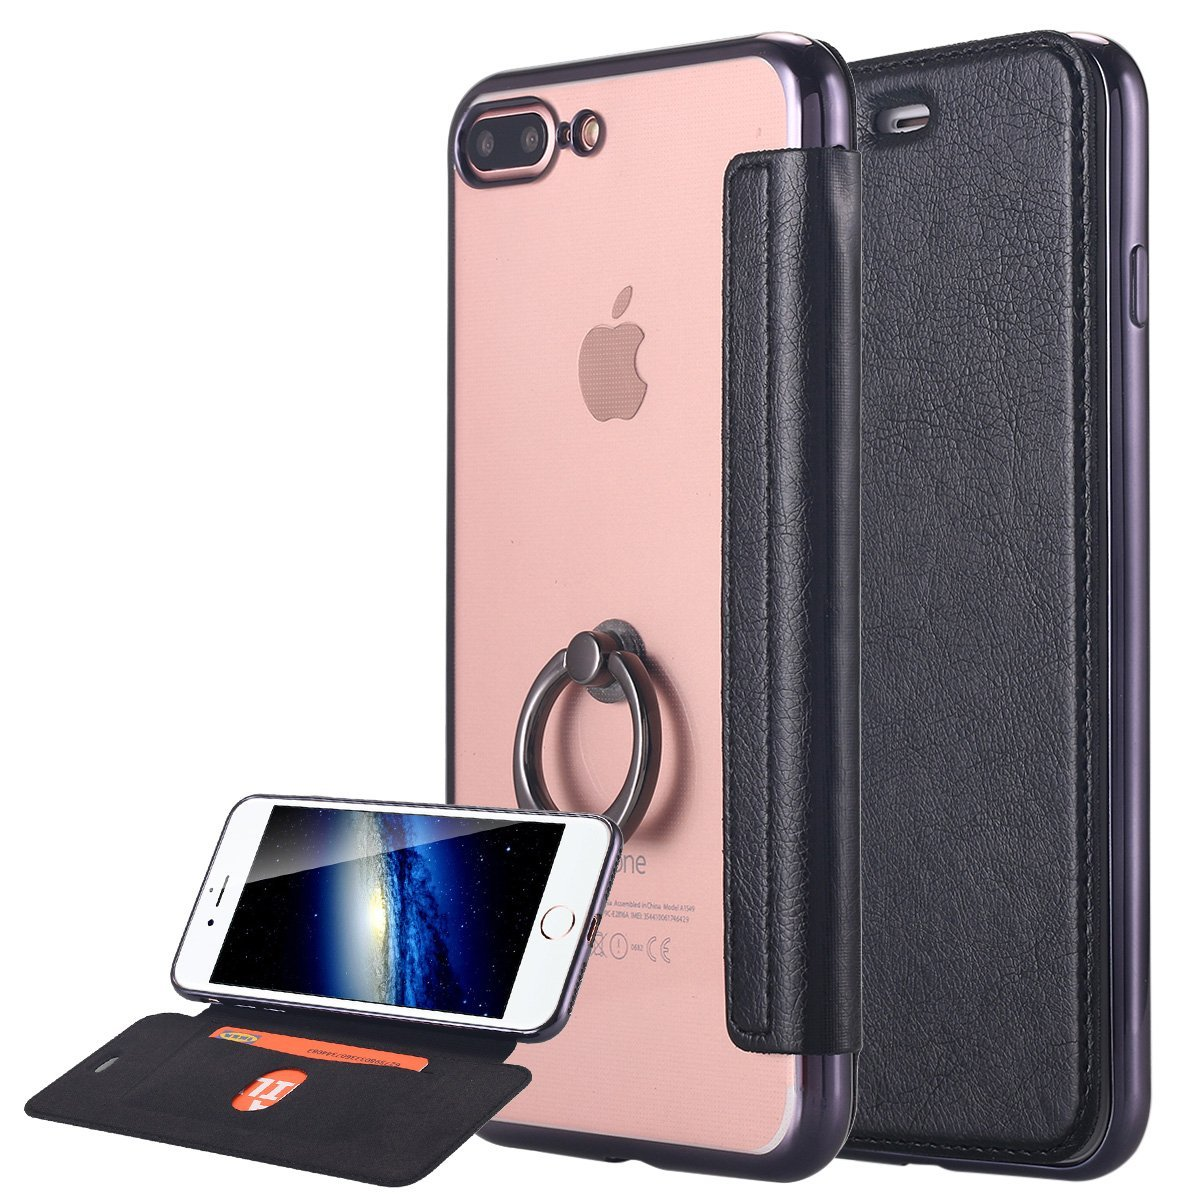 iPhone 7 Plus Case, LONTECT Ultra Slim PU Leather Folio Flip Case Card Slot with Clear Soft TPU Back Cover Built-in Ring Grip Holder for Apple iPhone 7 Plus - Black